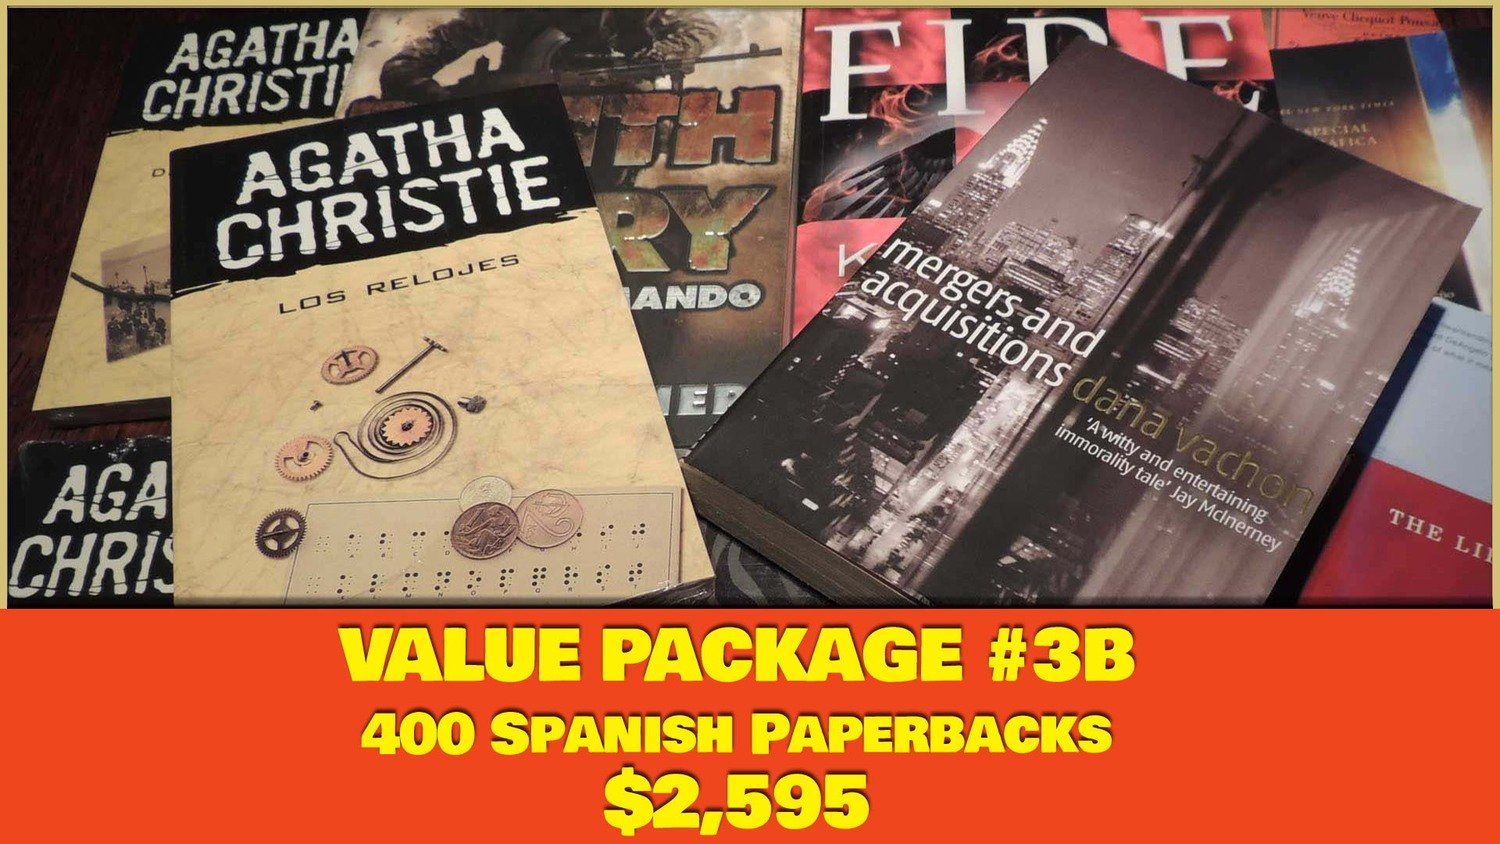 VALUE PACKAGE #3B